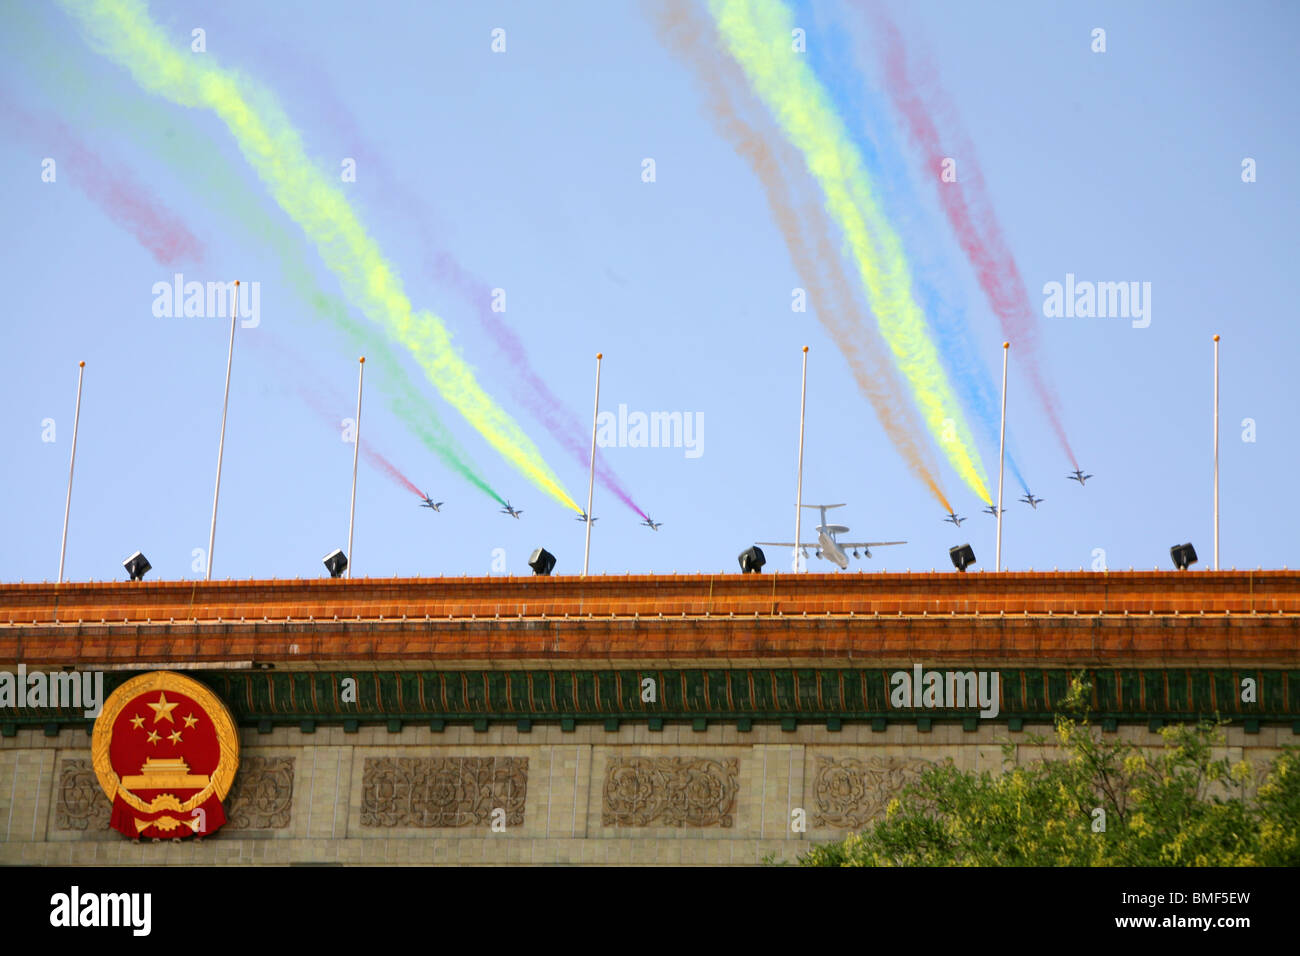 Fighter aircrafts flying over Great Hall Of The People, The 60th Anniversary of the People's Republic of China, - Stock Image